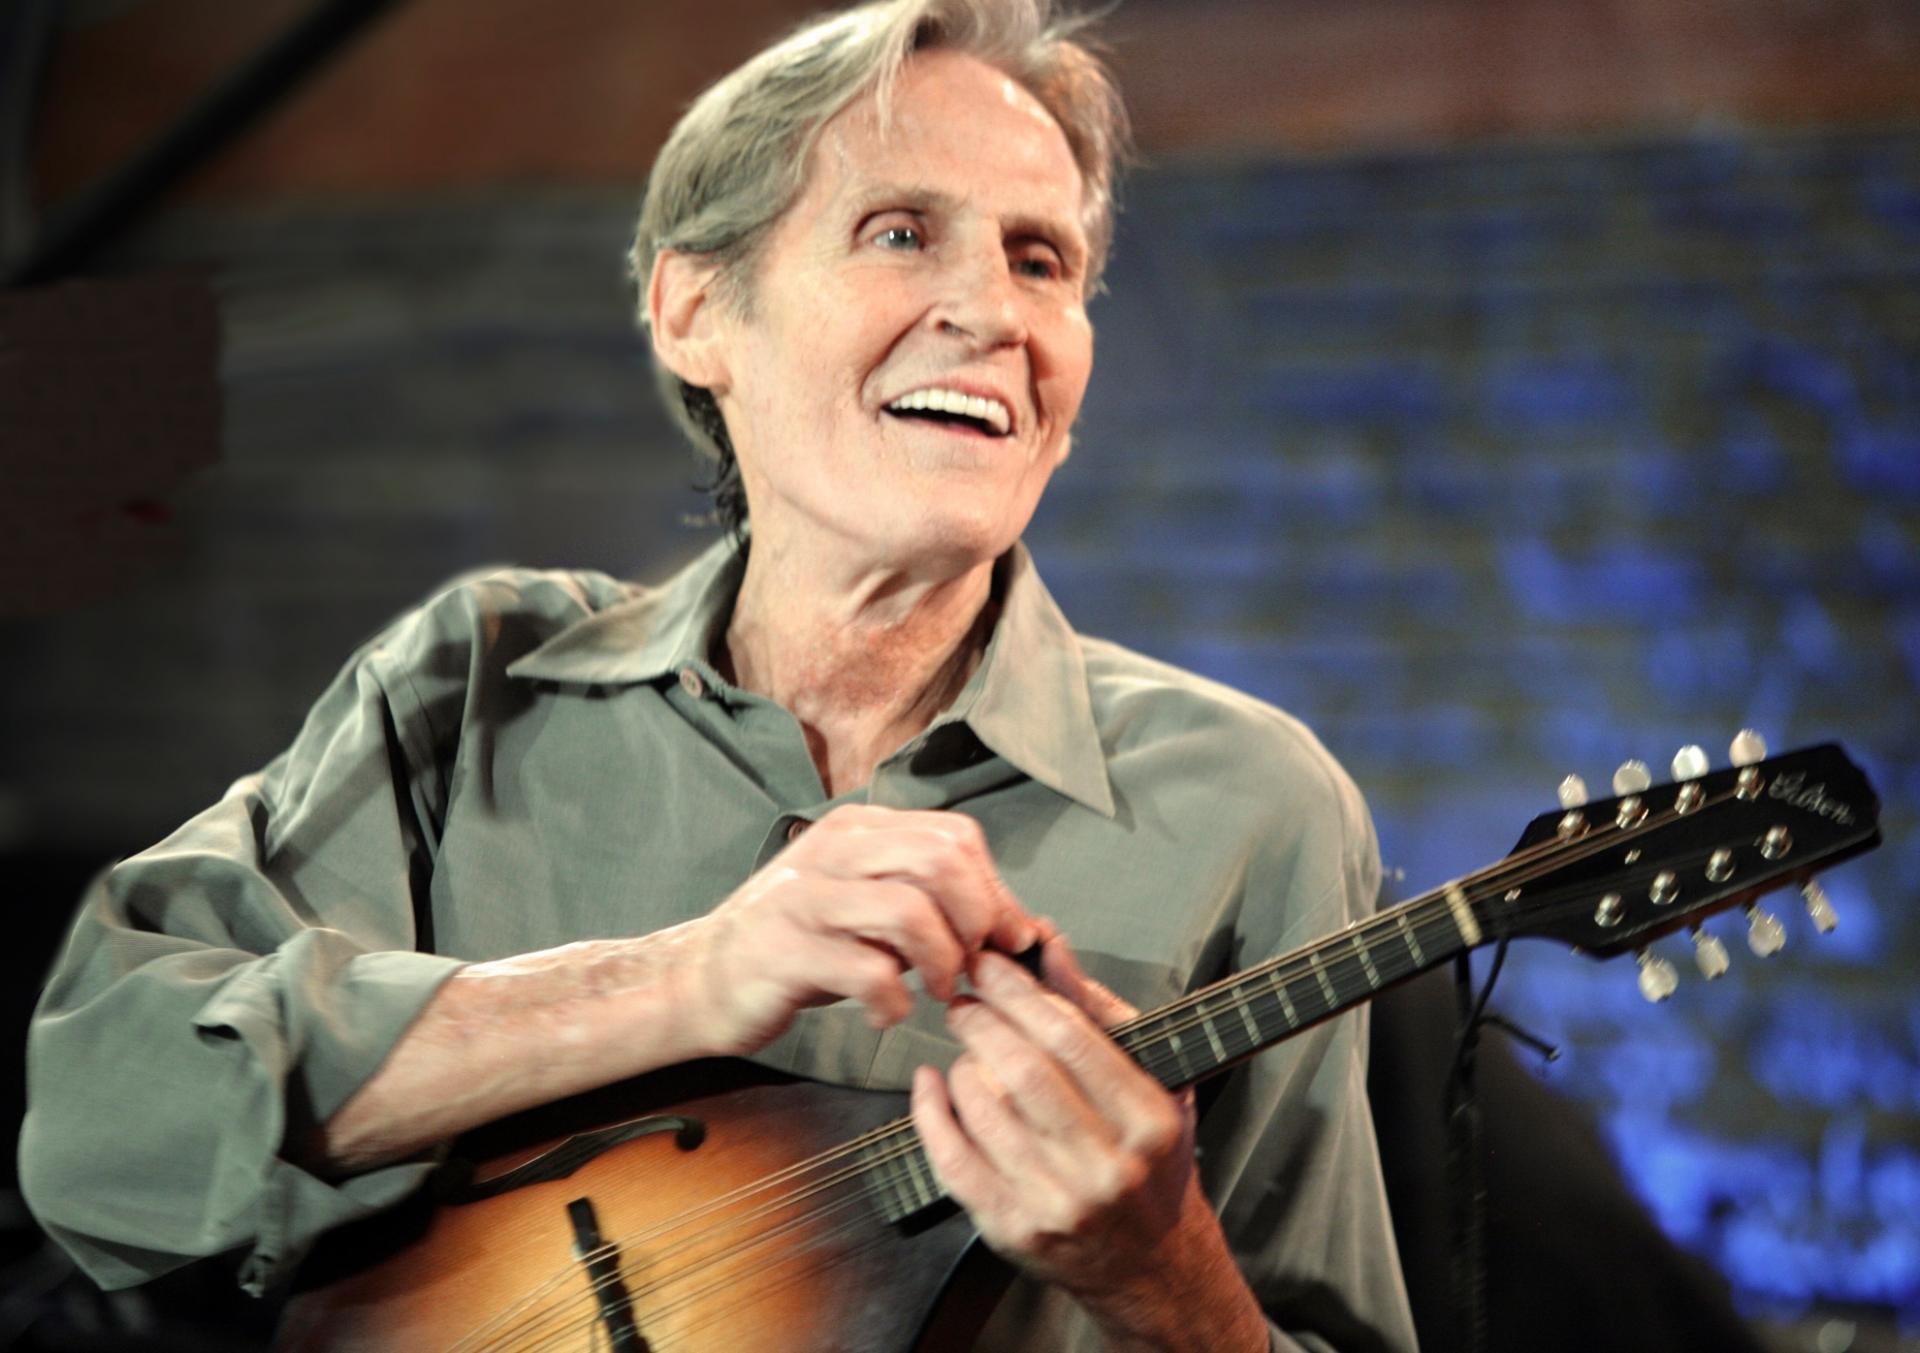 Levon helm cancer